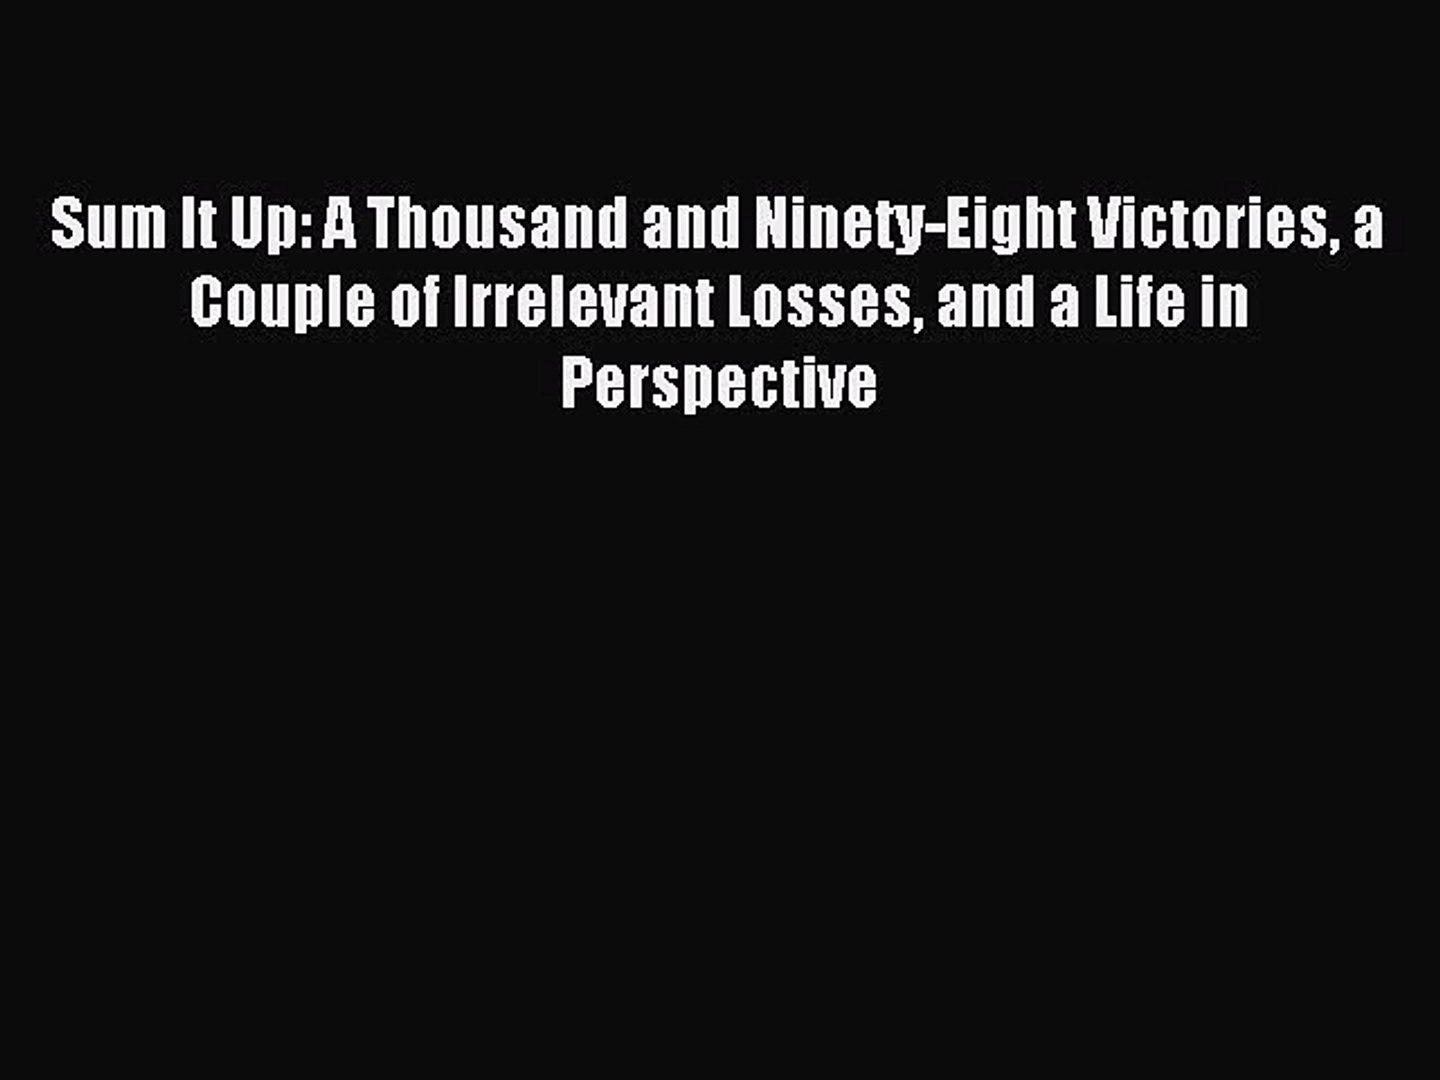 Read Sum It Up: A Thousand and Ninety-Eight Victories a Couple of Irrelevant Losses and a Life